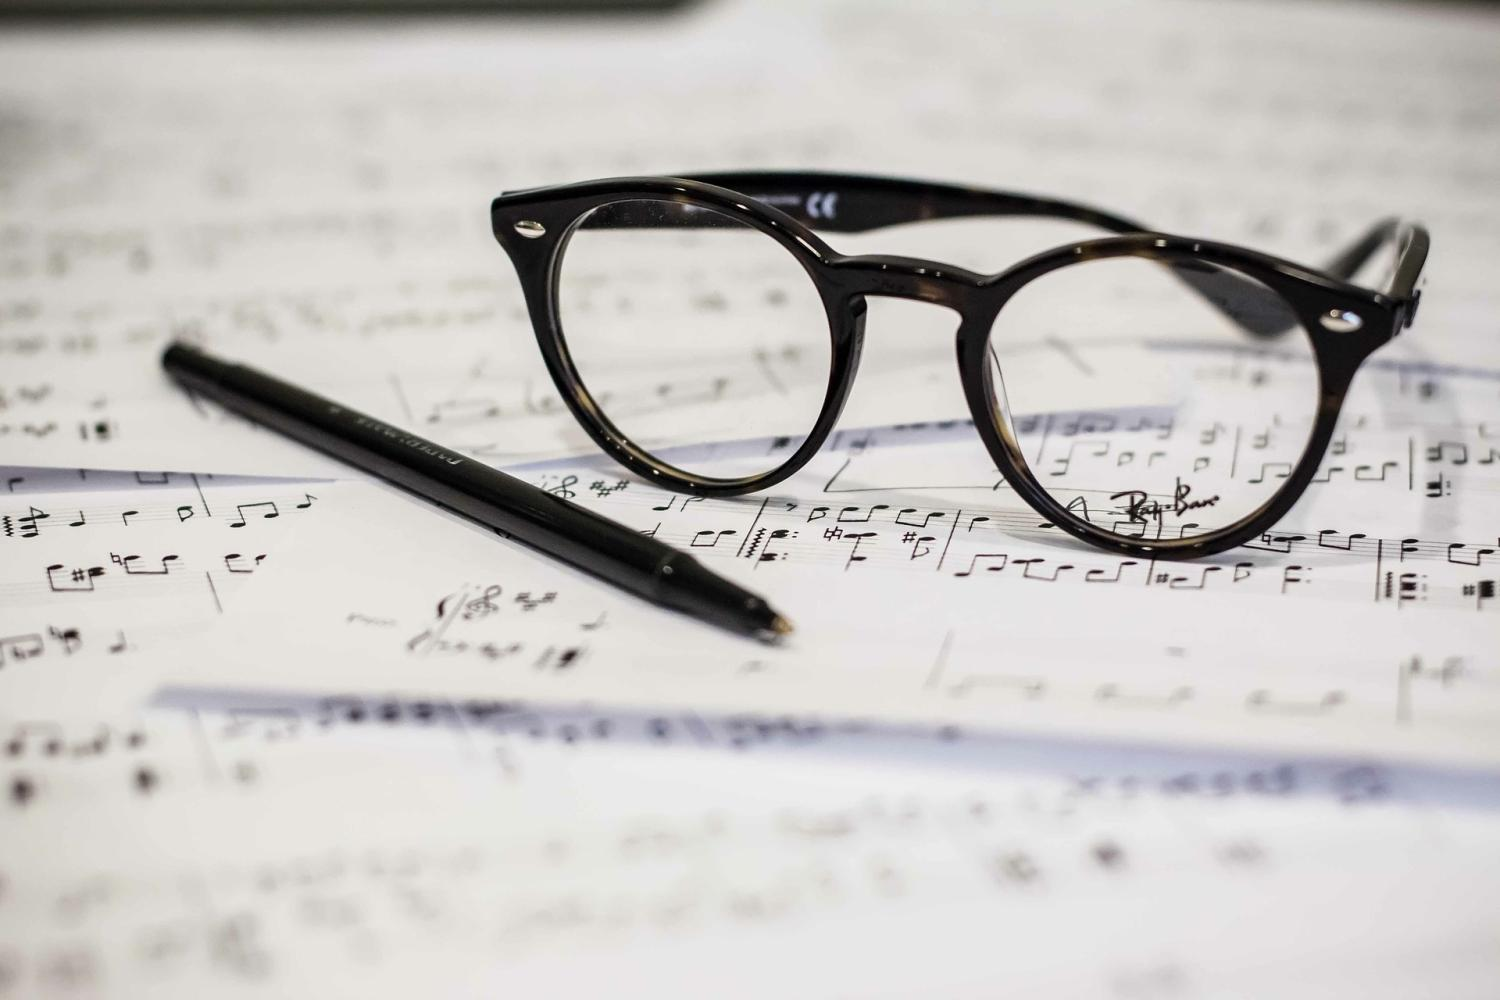 sheet music on desk with pen and glasses on top